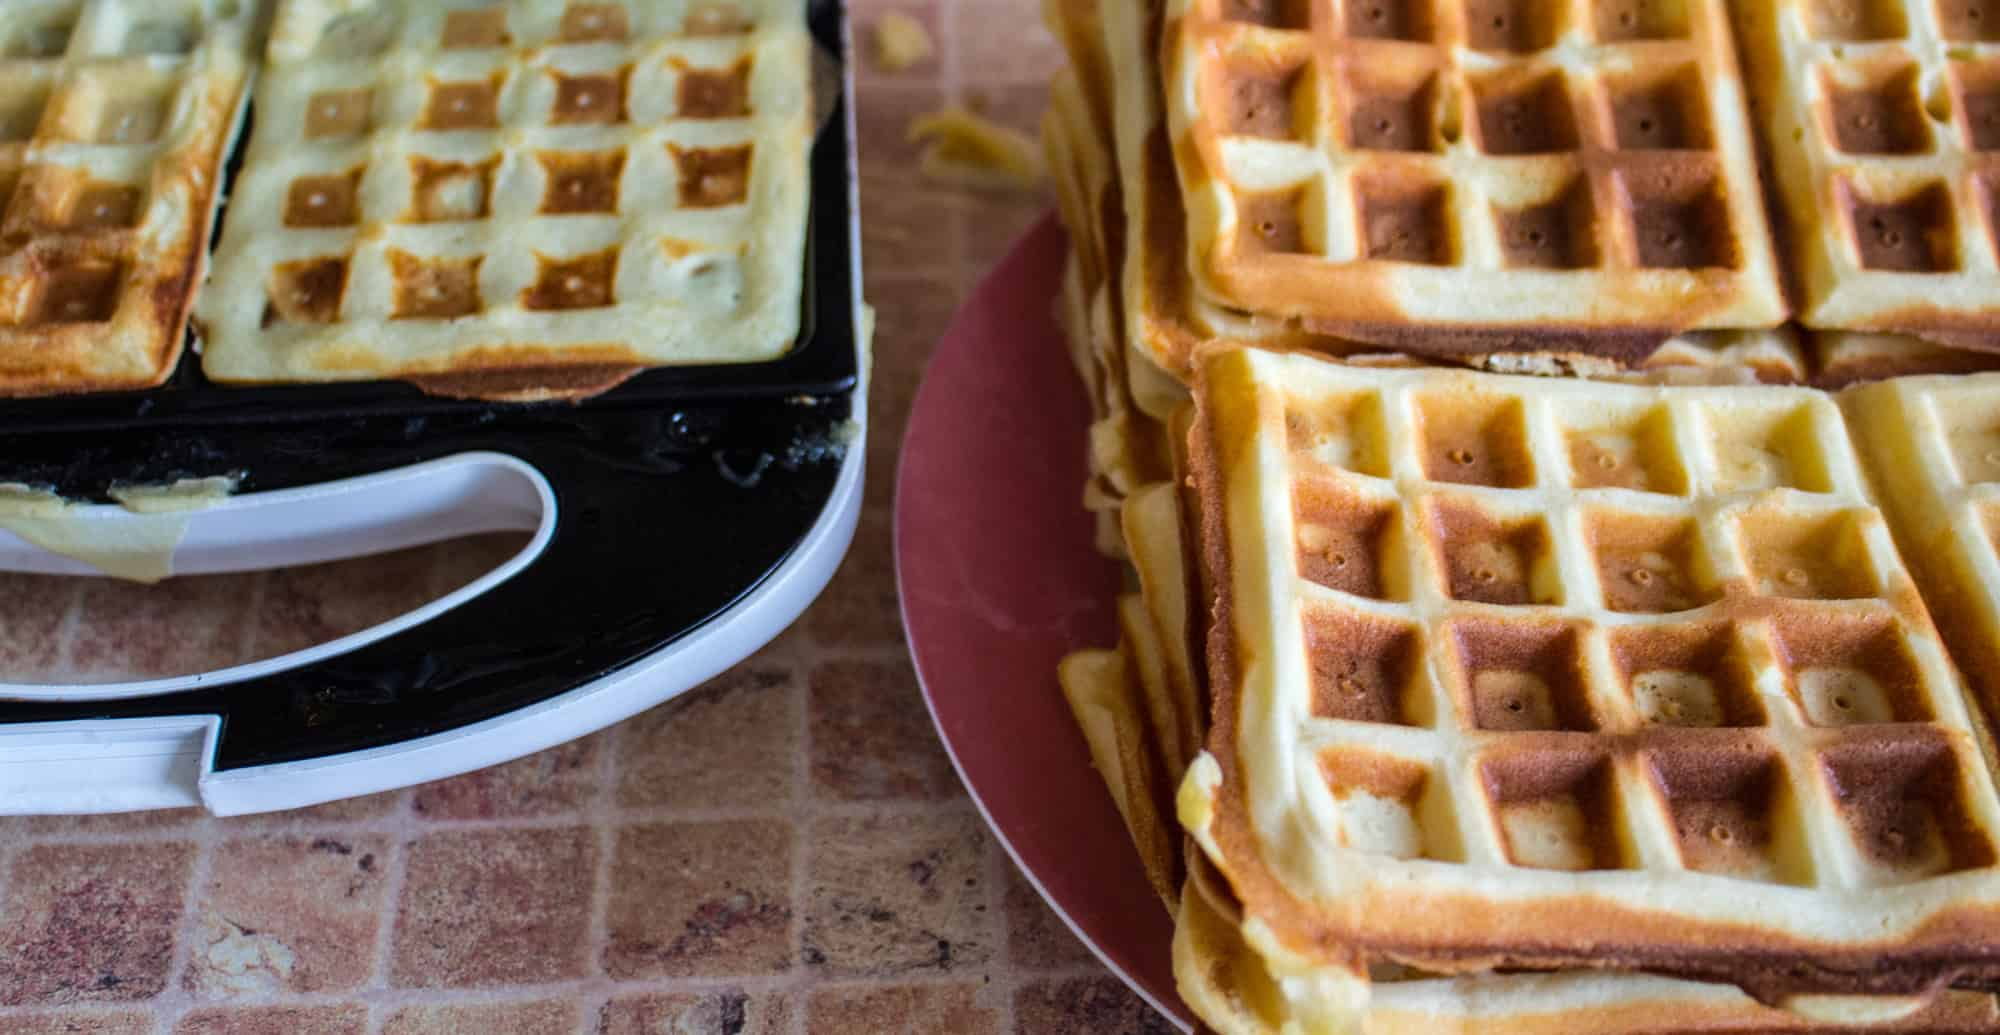 What features do you want in a waffle maker?